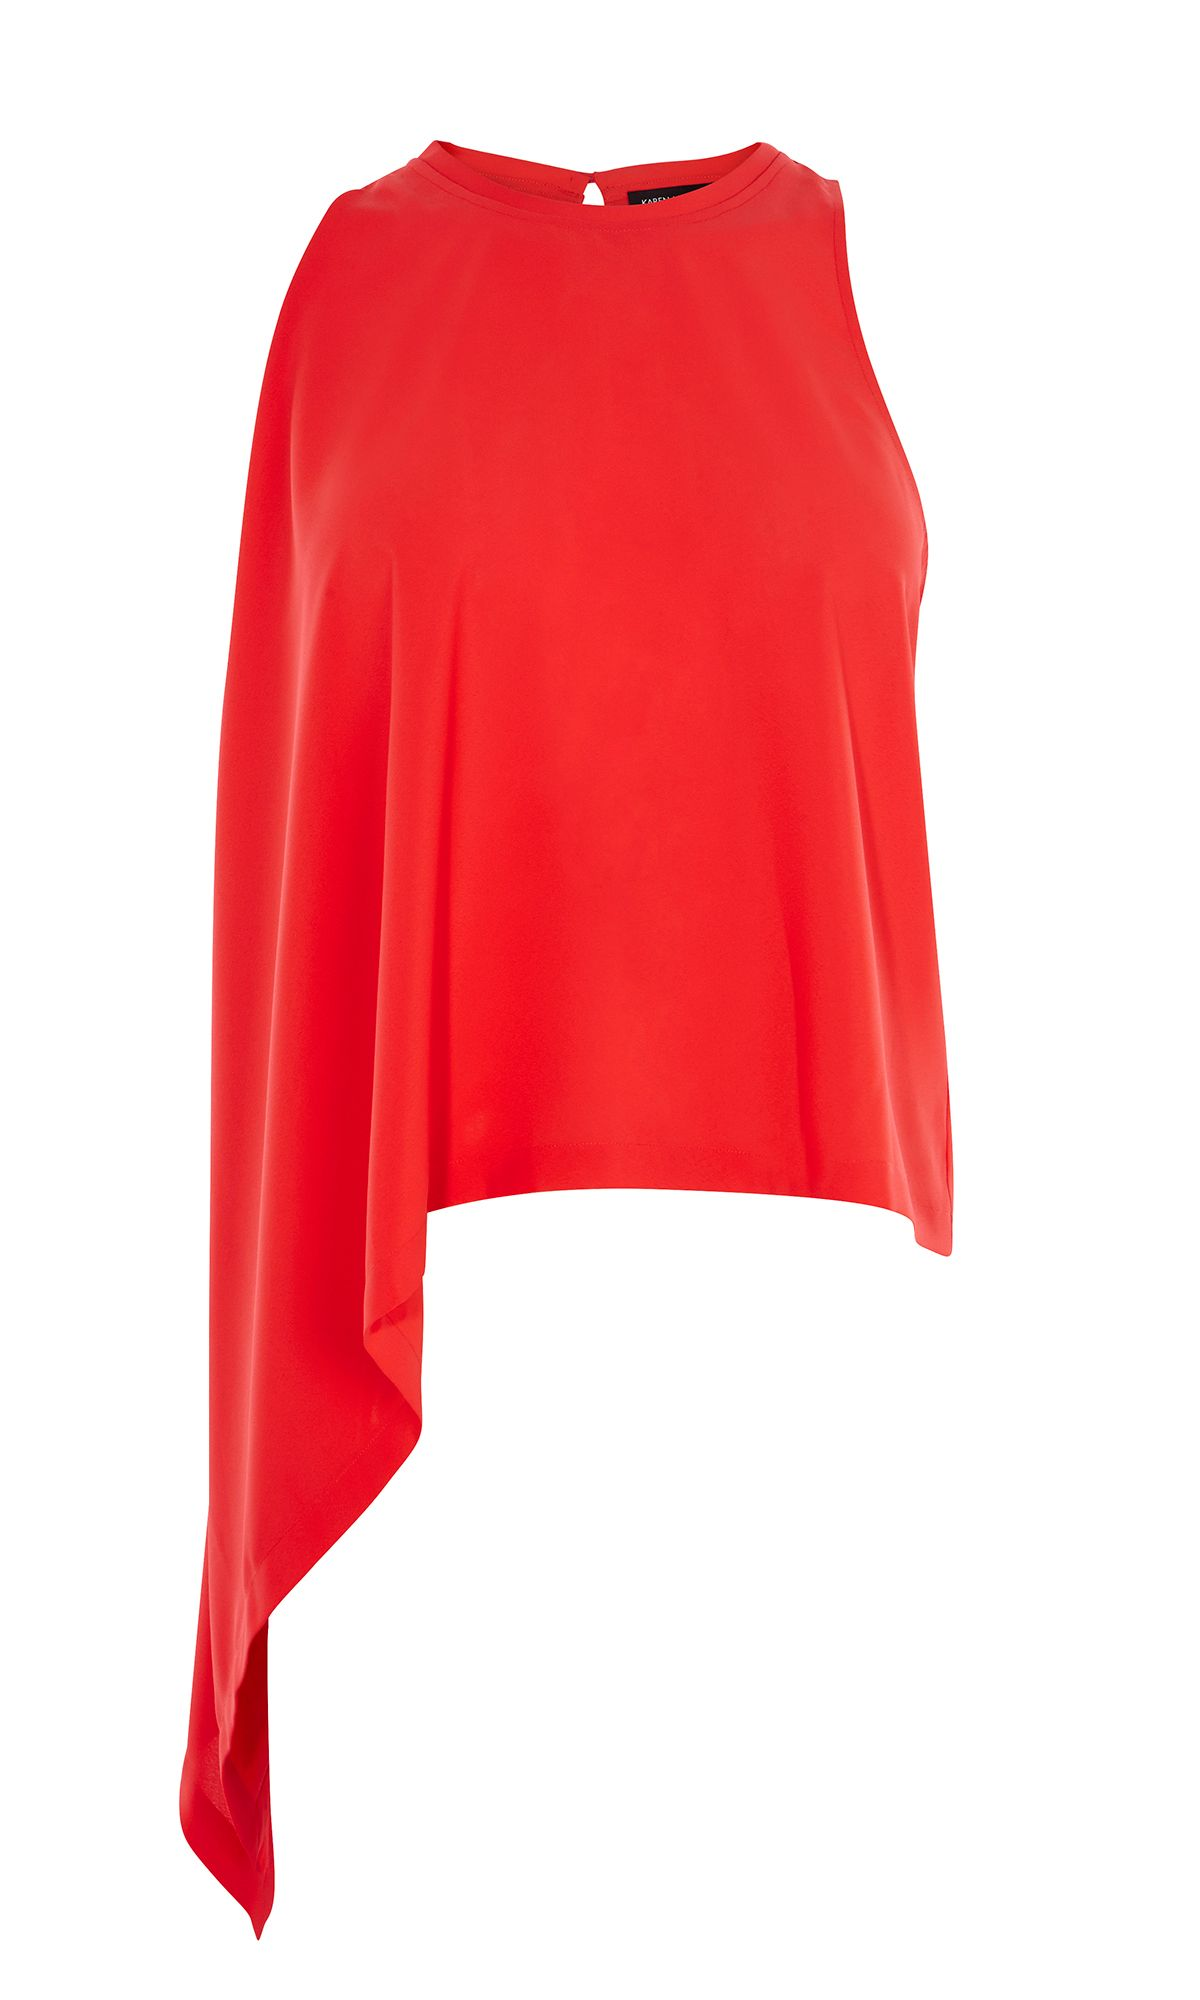 Karen Millen Knot Side Top, Red